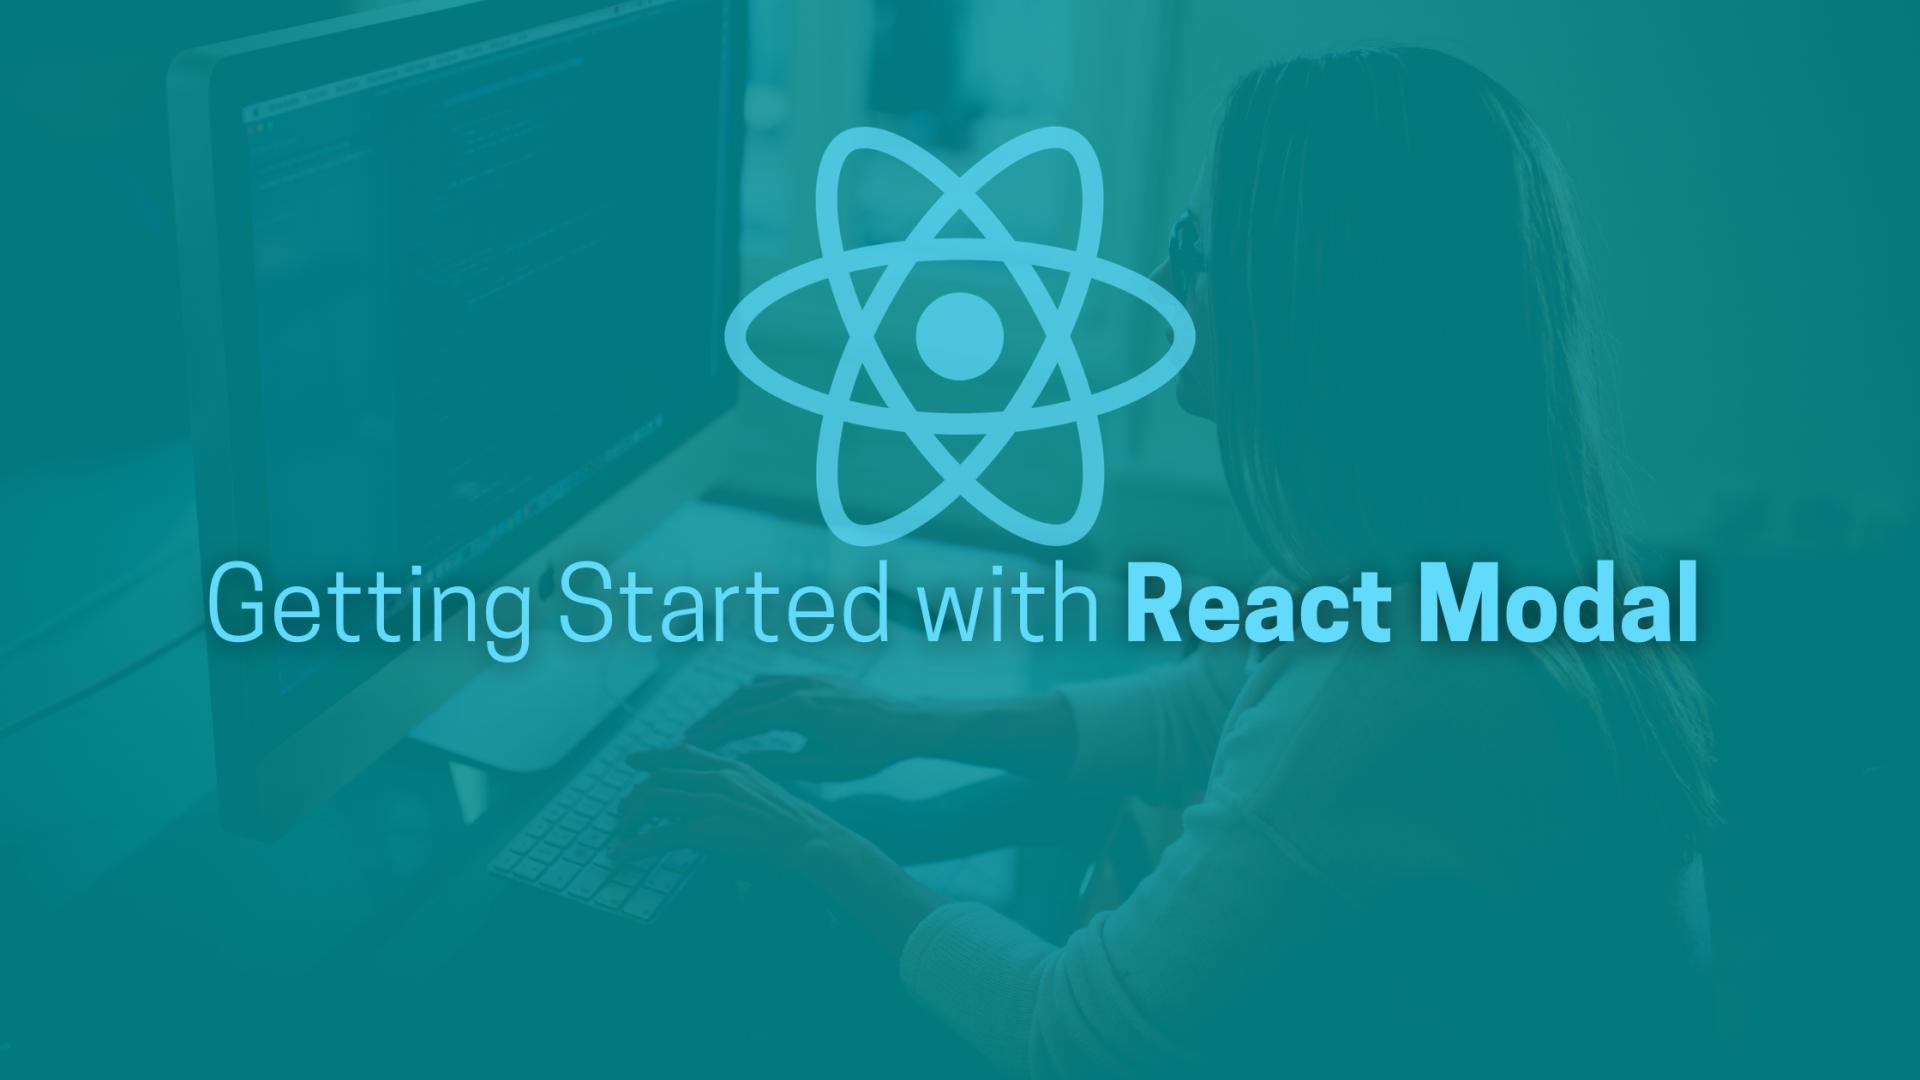 Getting Started with React Modal